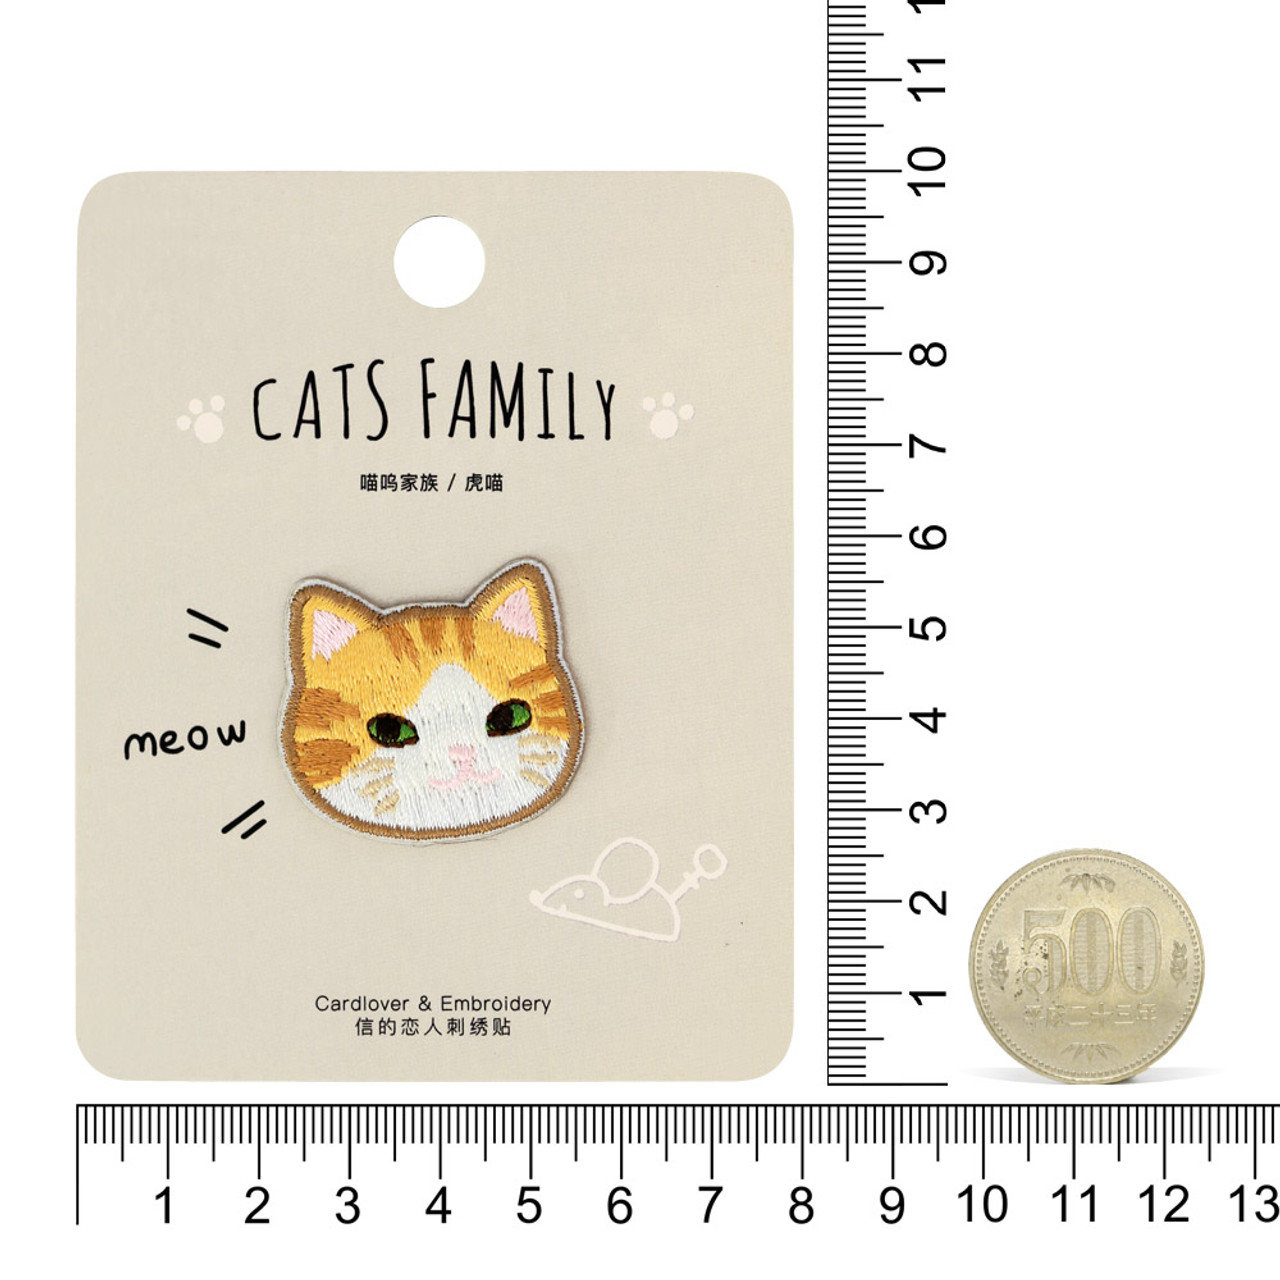 Cats Family Tabby Cat Iron On Patch ( Proportion )